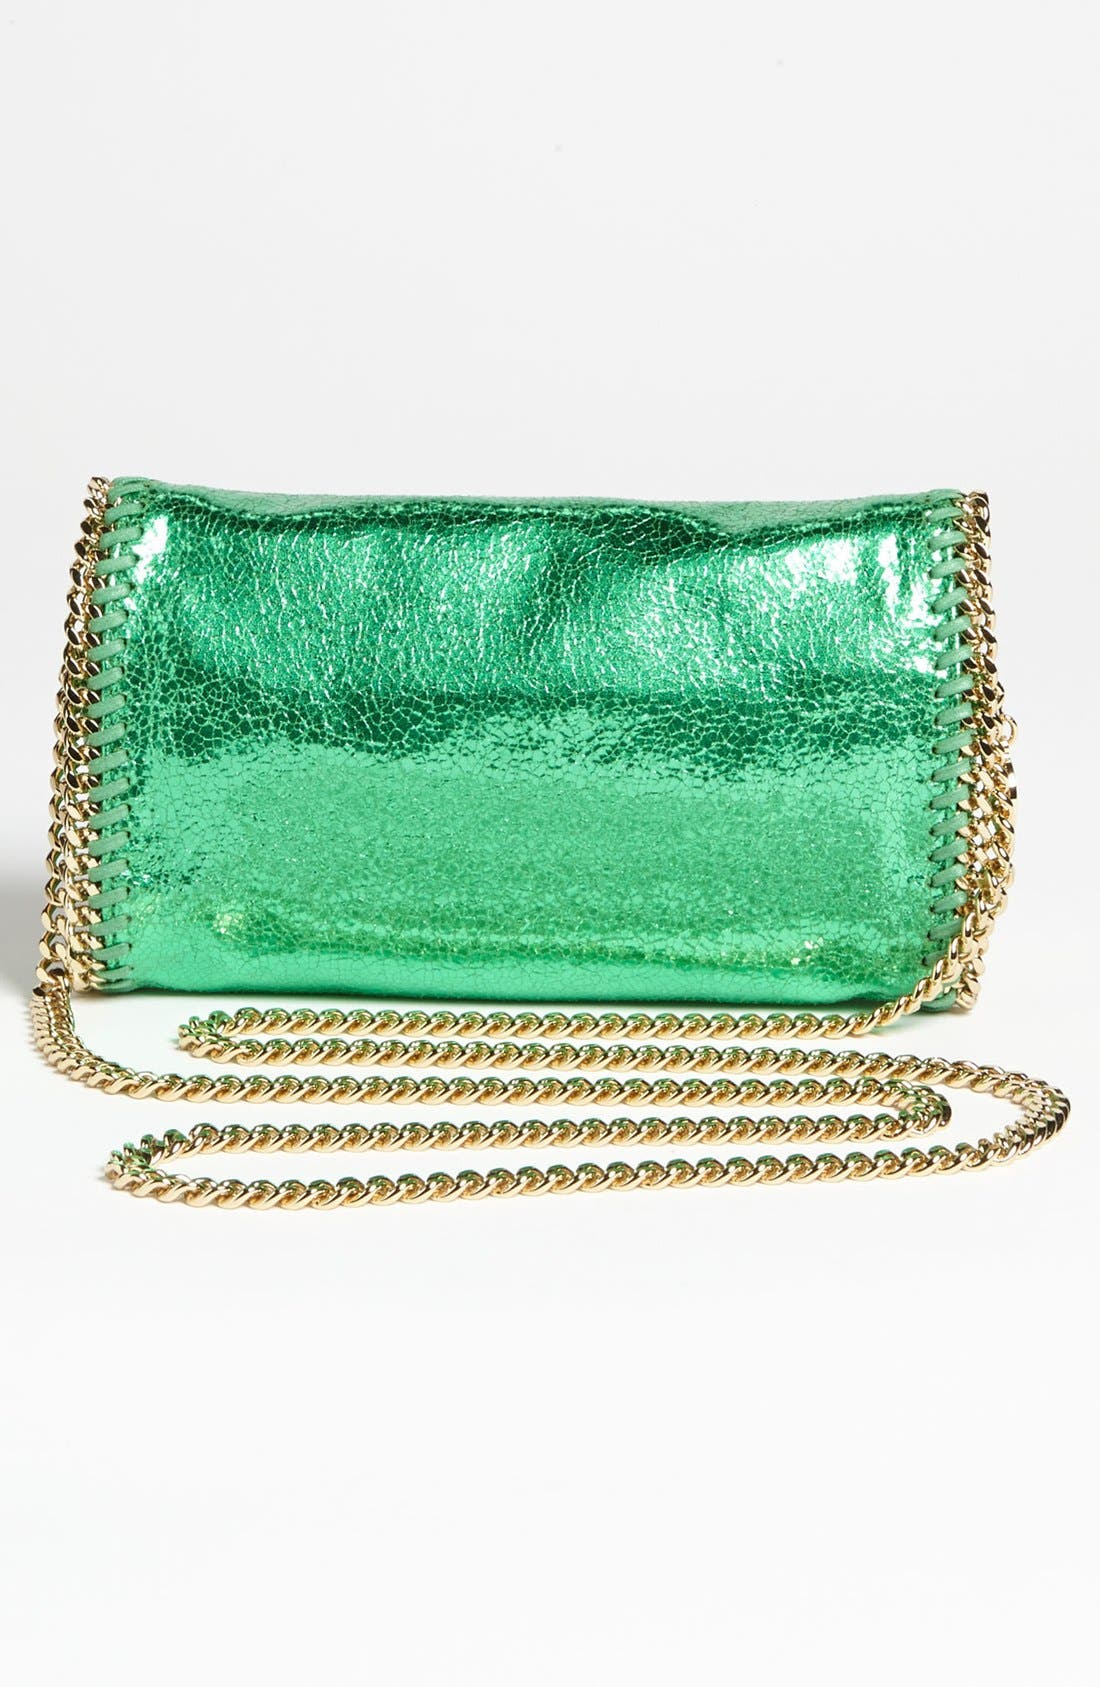 'Falabella - Cracle' Crossbody Bag,                             Alternate thumbnail 3, color,                             320